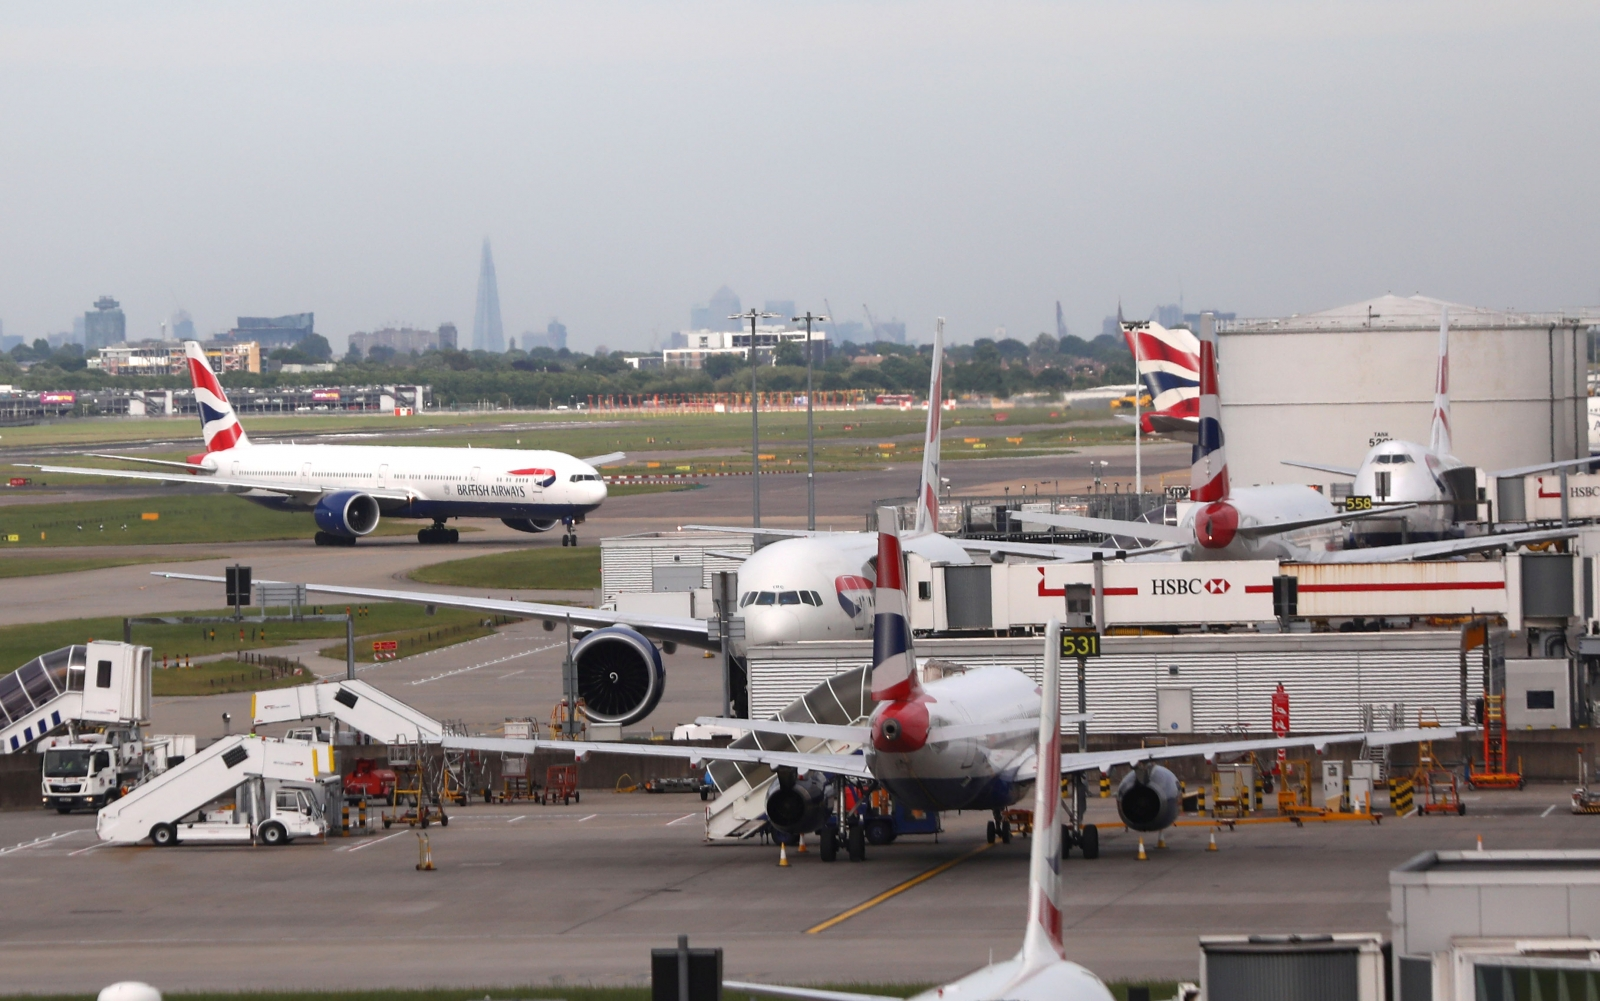 British Airways aims to resume most UK flights